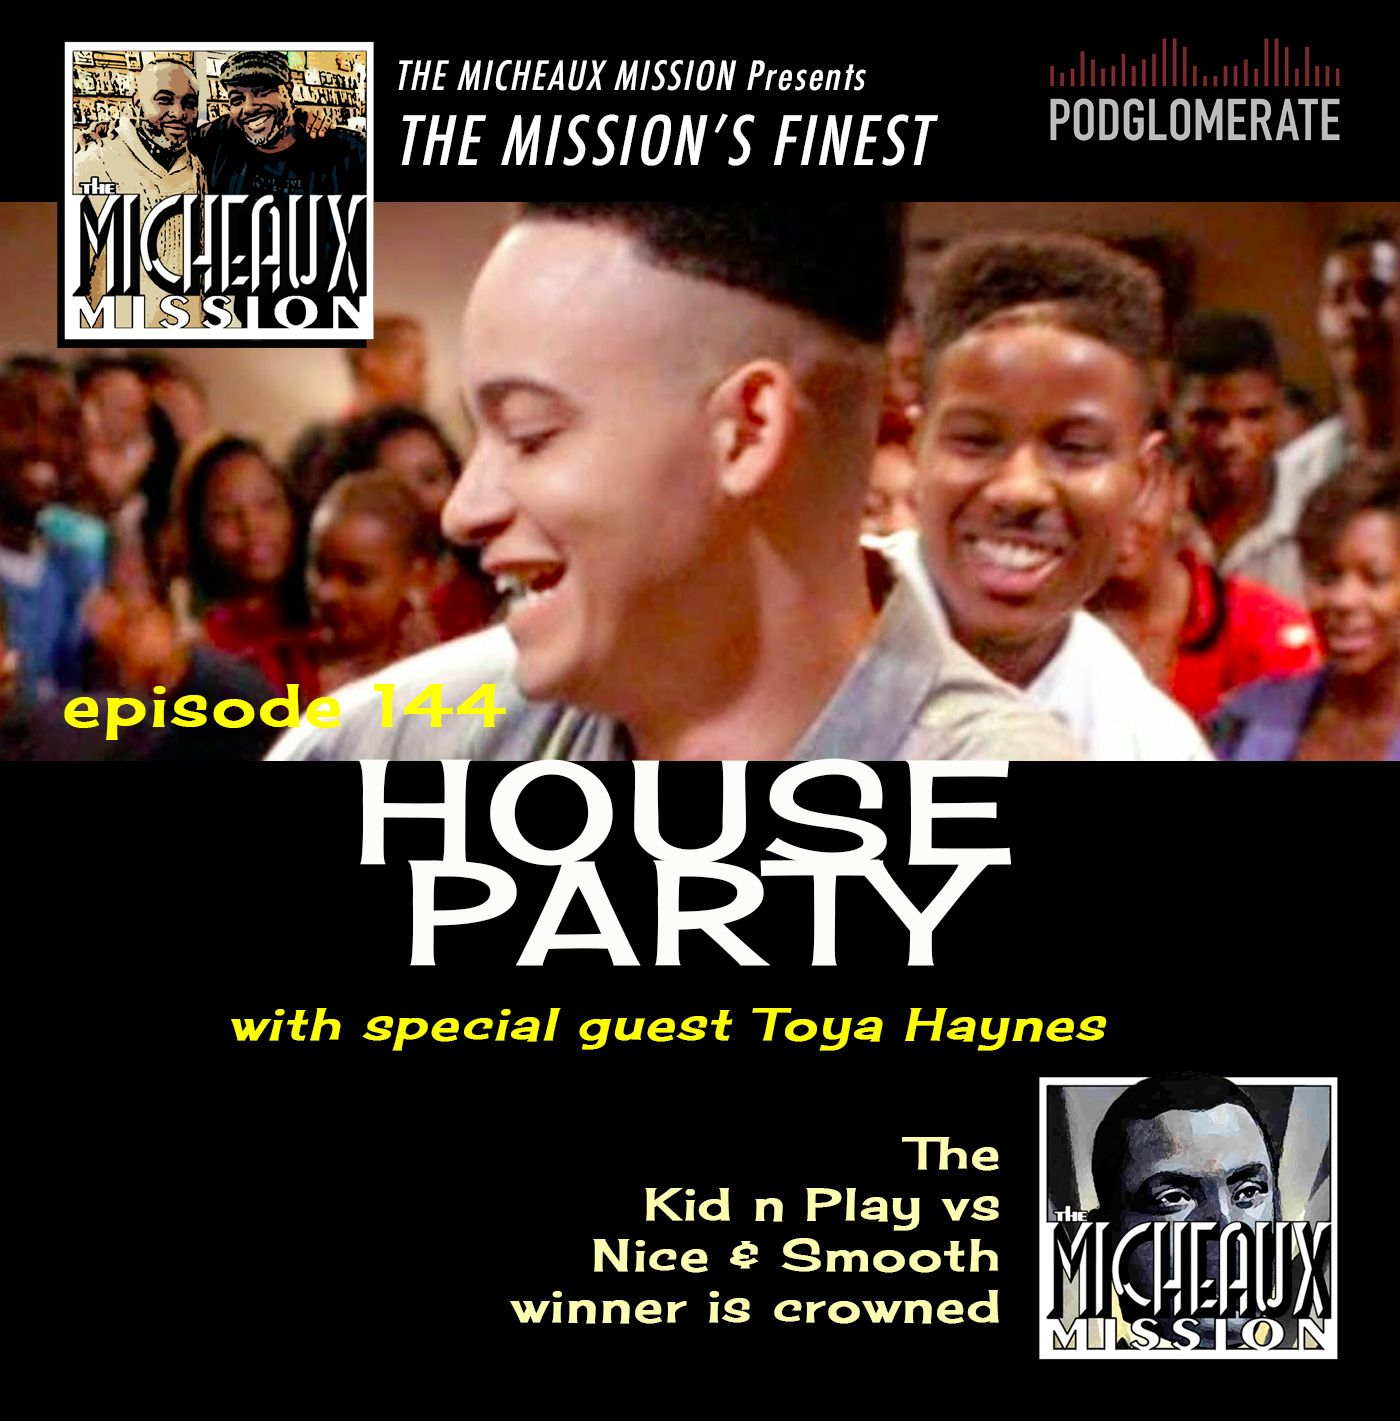 THE MISSION FINEST - House Party (1990) w Toya Haynes